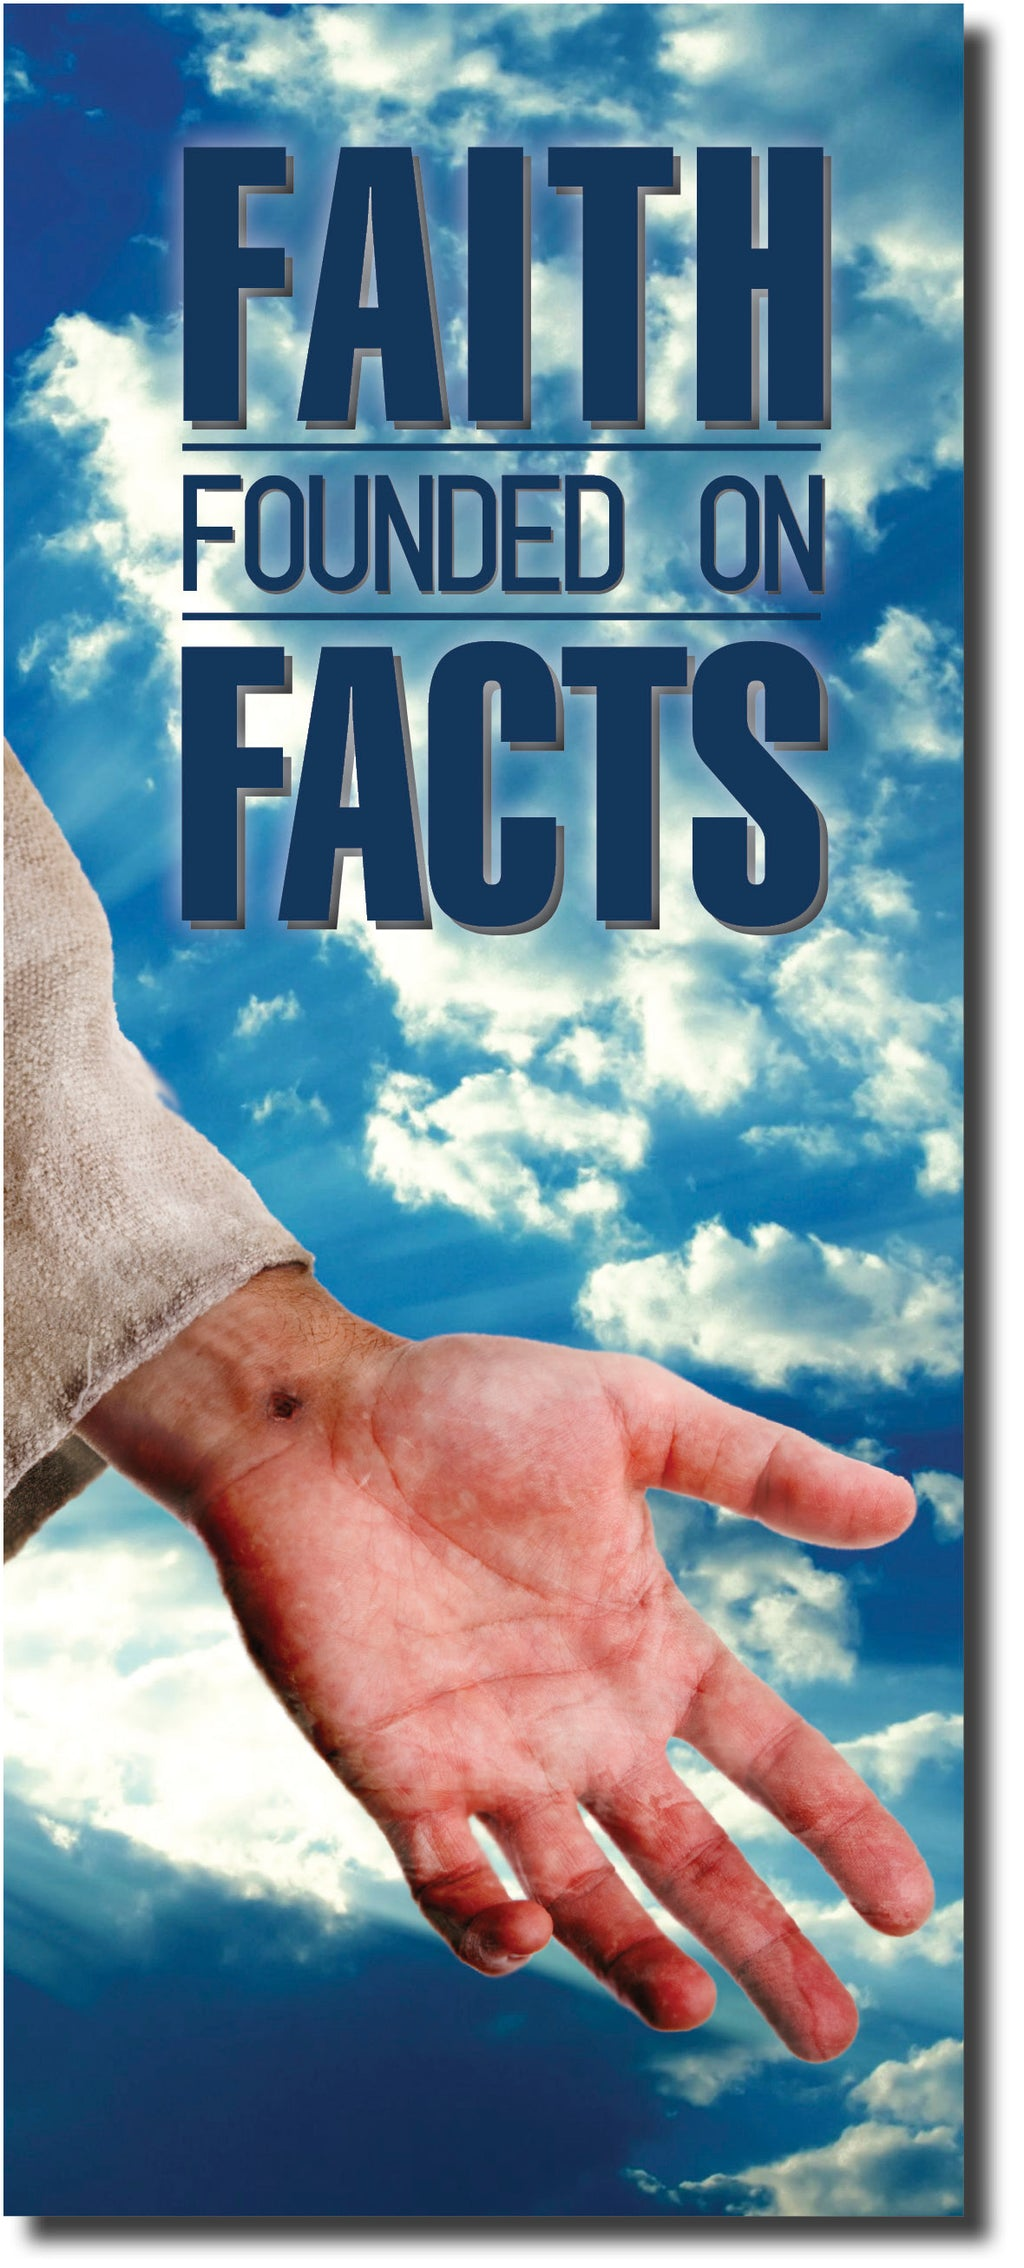 Faith Founded on Facts